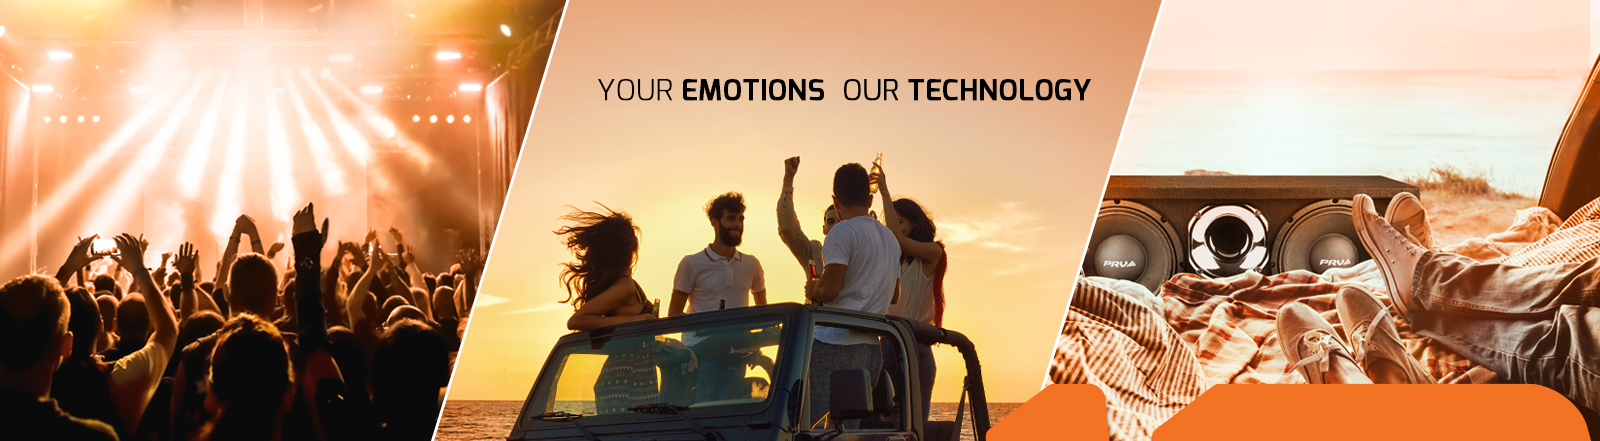 Your-Emotions-Our-Technology---Image